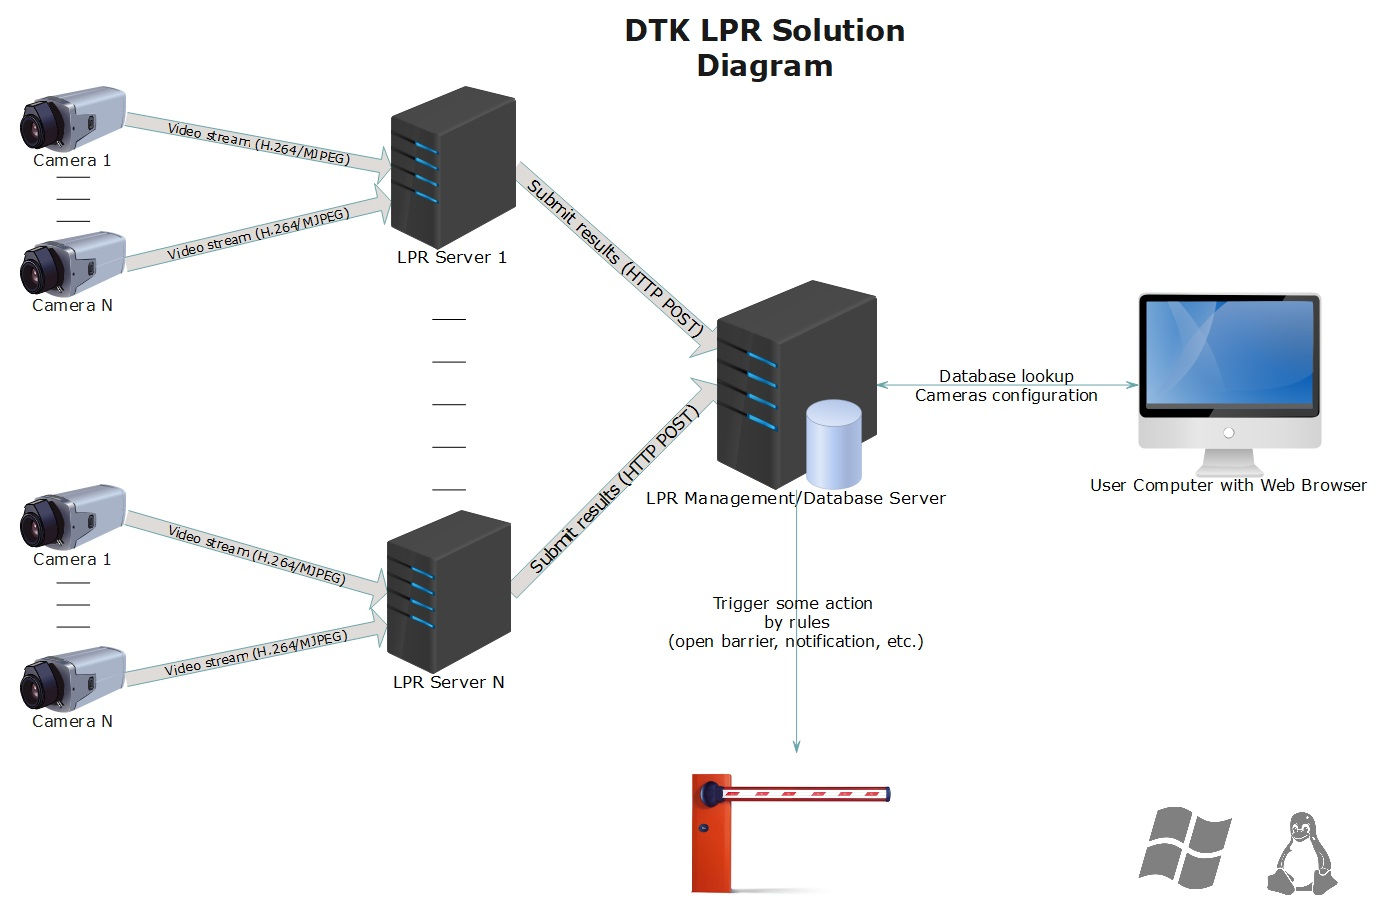 DTK ANPR/LPR Solution Diagram